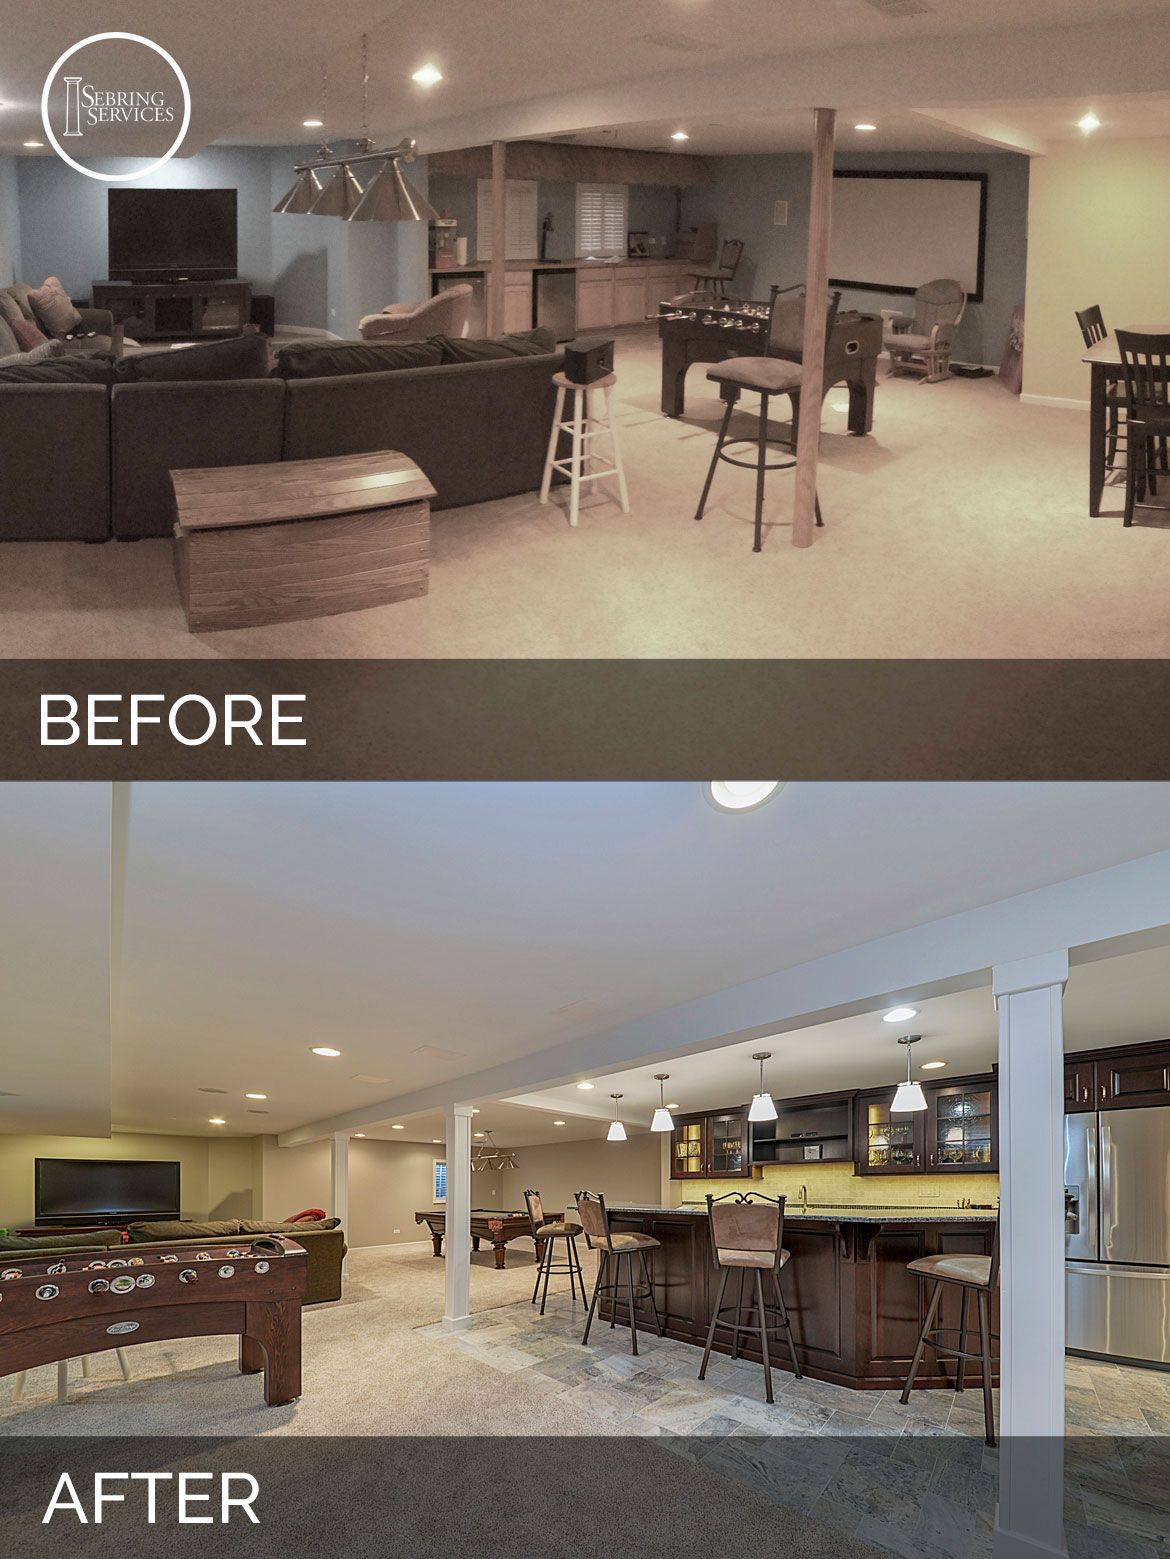 Basement Remodeling Service Ideas Remodelling brett & carolyn's basement before & after pictures | basements